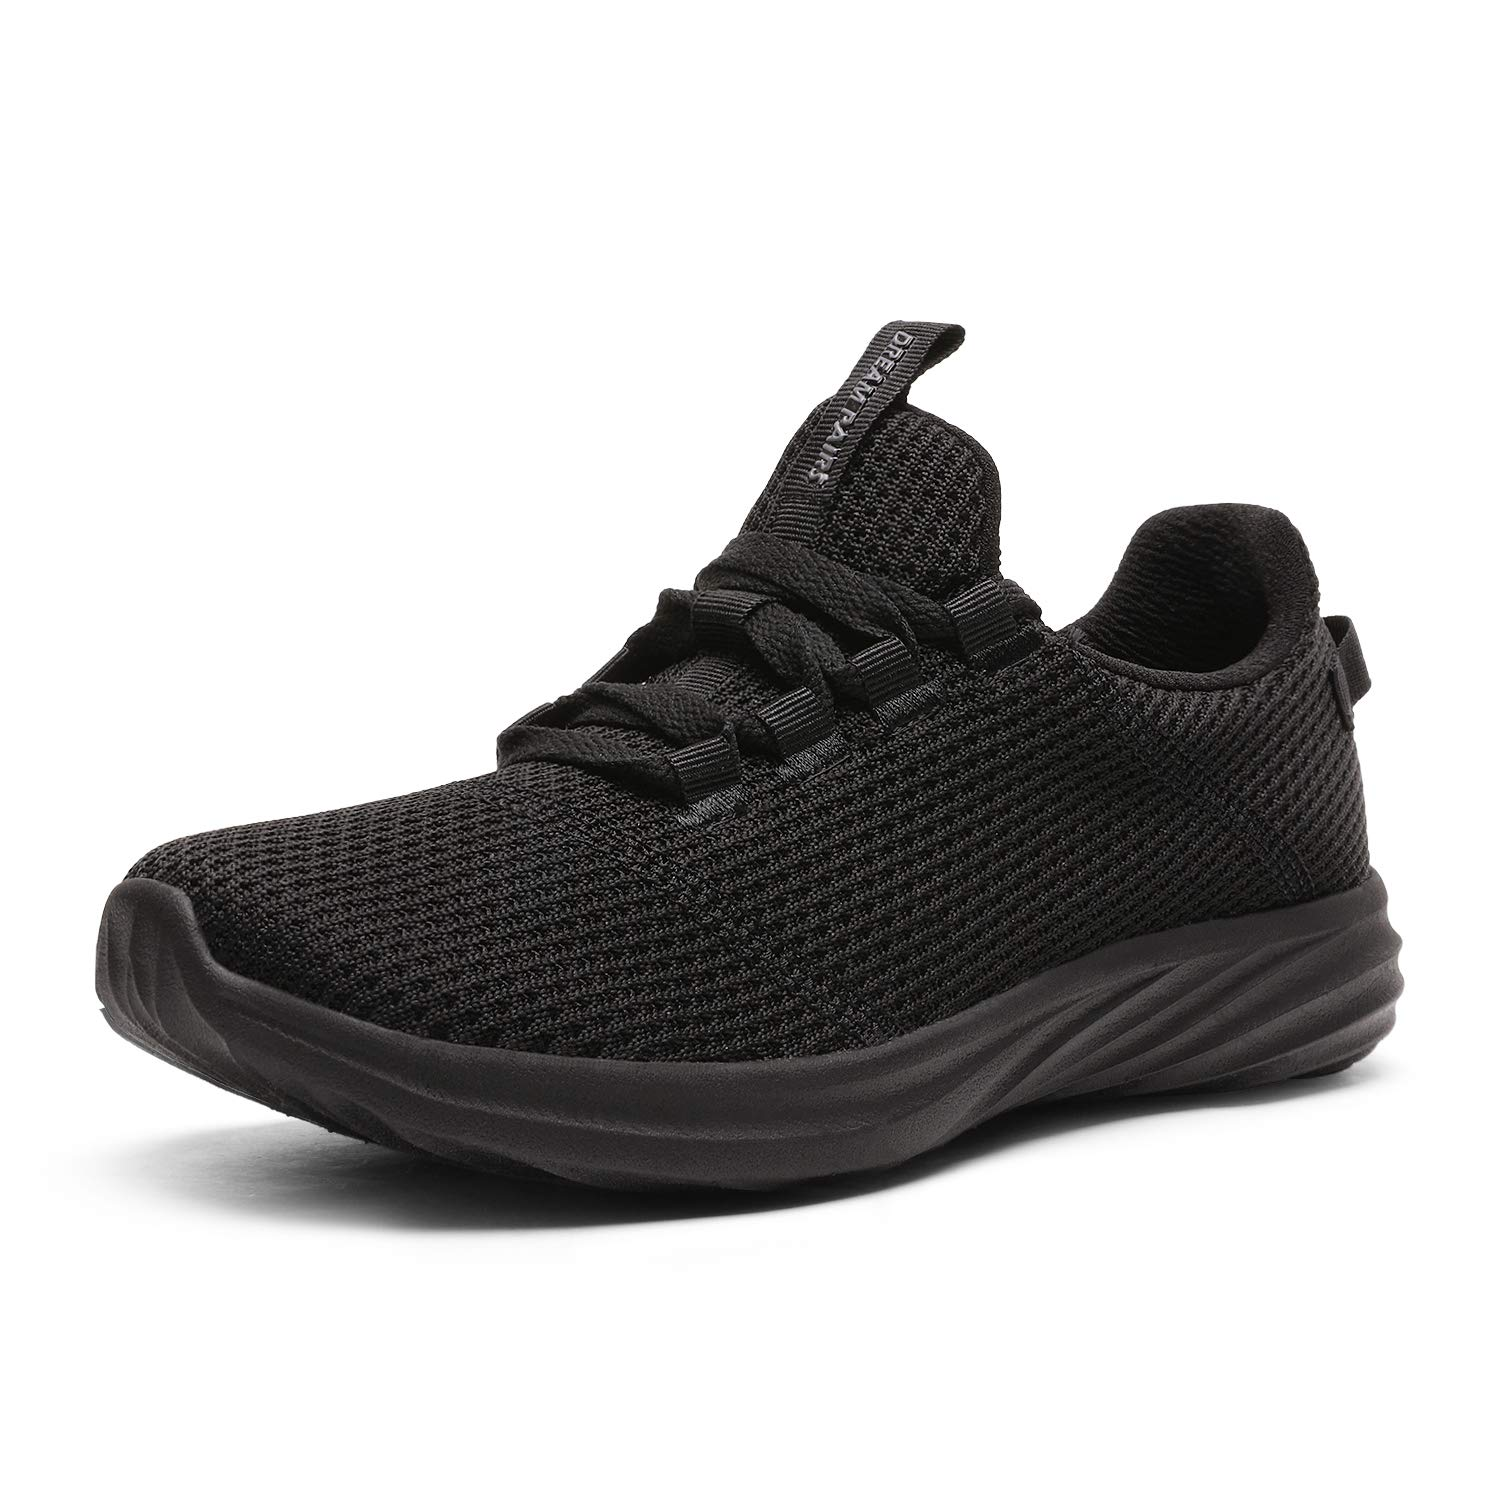 DREAM PAIRS Women's Lightweight Running Tennis Shoes Athletic Sneakers